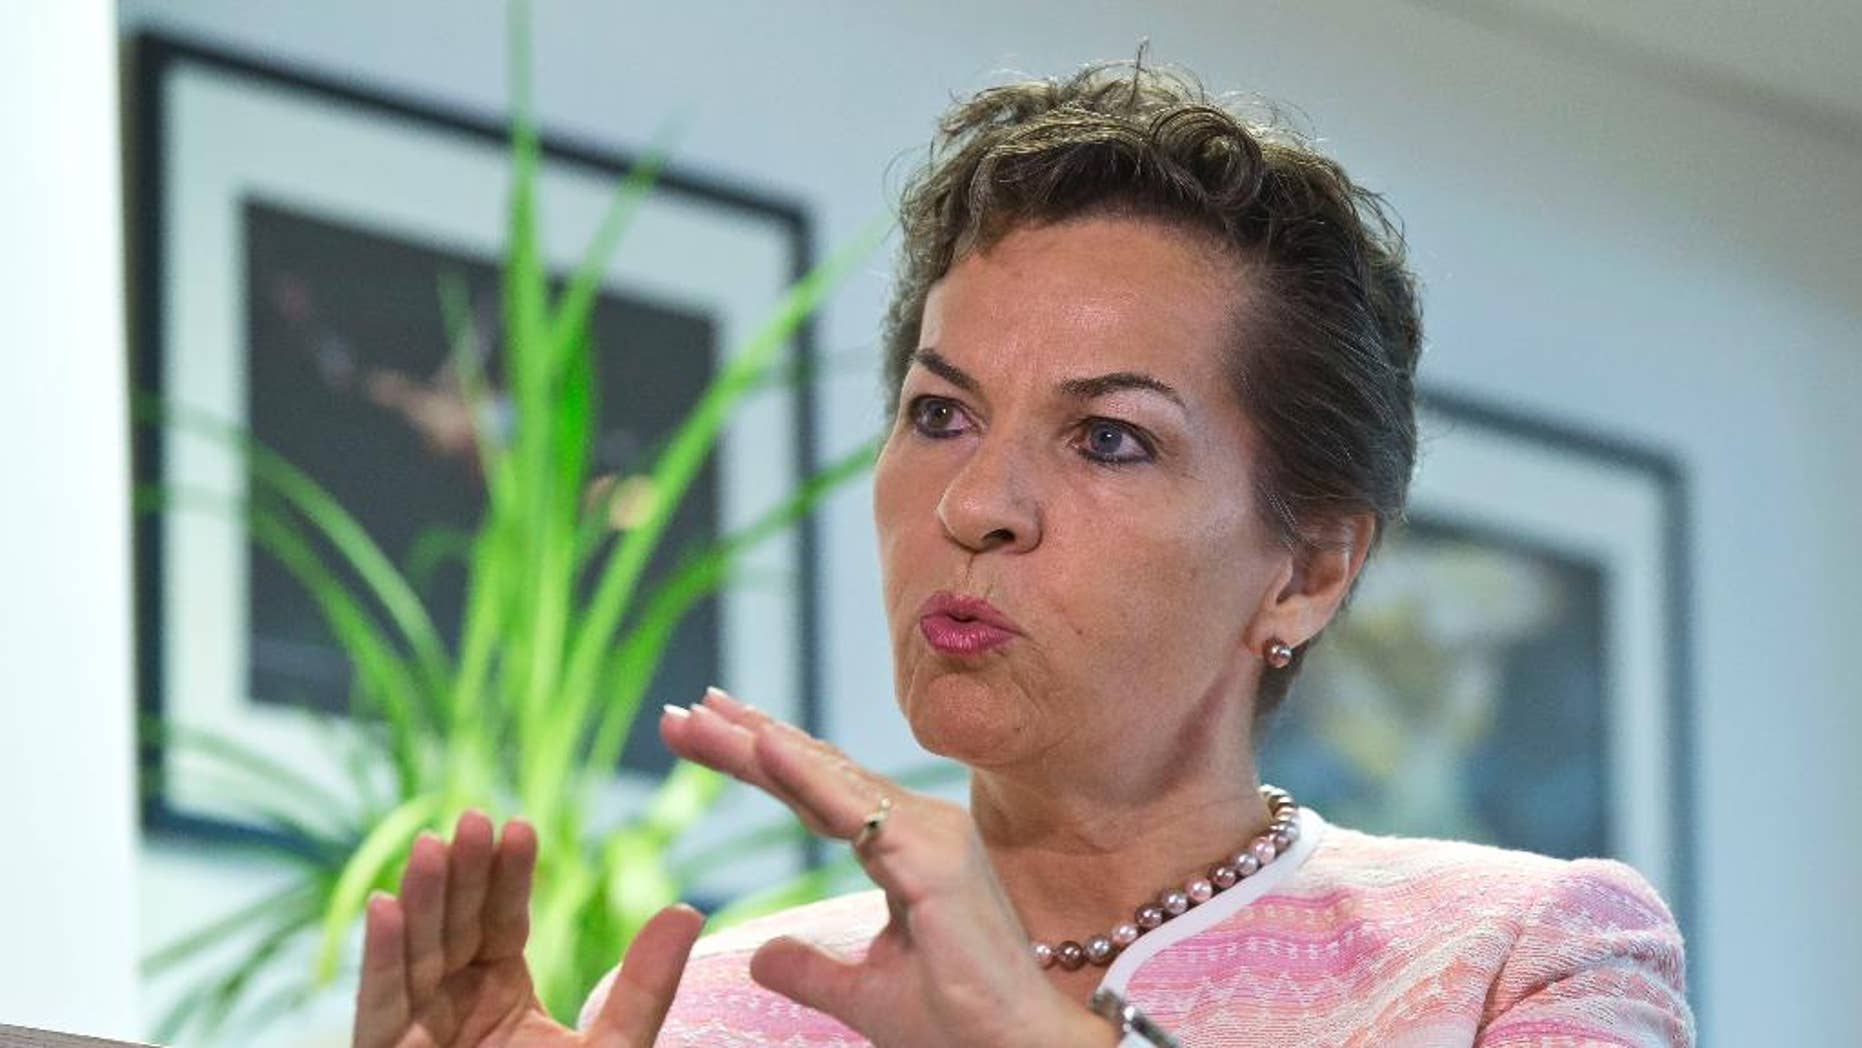 FILE - In this July 22, 2015 file photo United Nations climate chief Christiana Figueres, gestures as she speaks during an interview of the Associated Press in Paris, France. Figueres says Friday, Oct. 30, 2015, emissions-cutting pledges made by governments ahead of a December conference are a good step toward achieving an international global-warming goal, but they aren't yet enough. (AP Photo/Michel Euler, file)